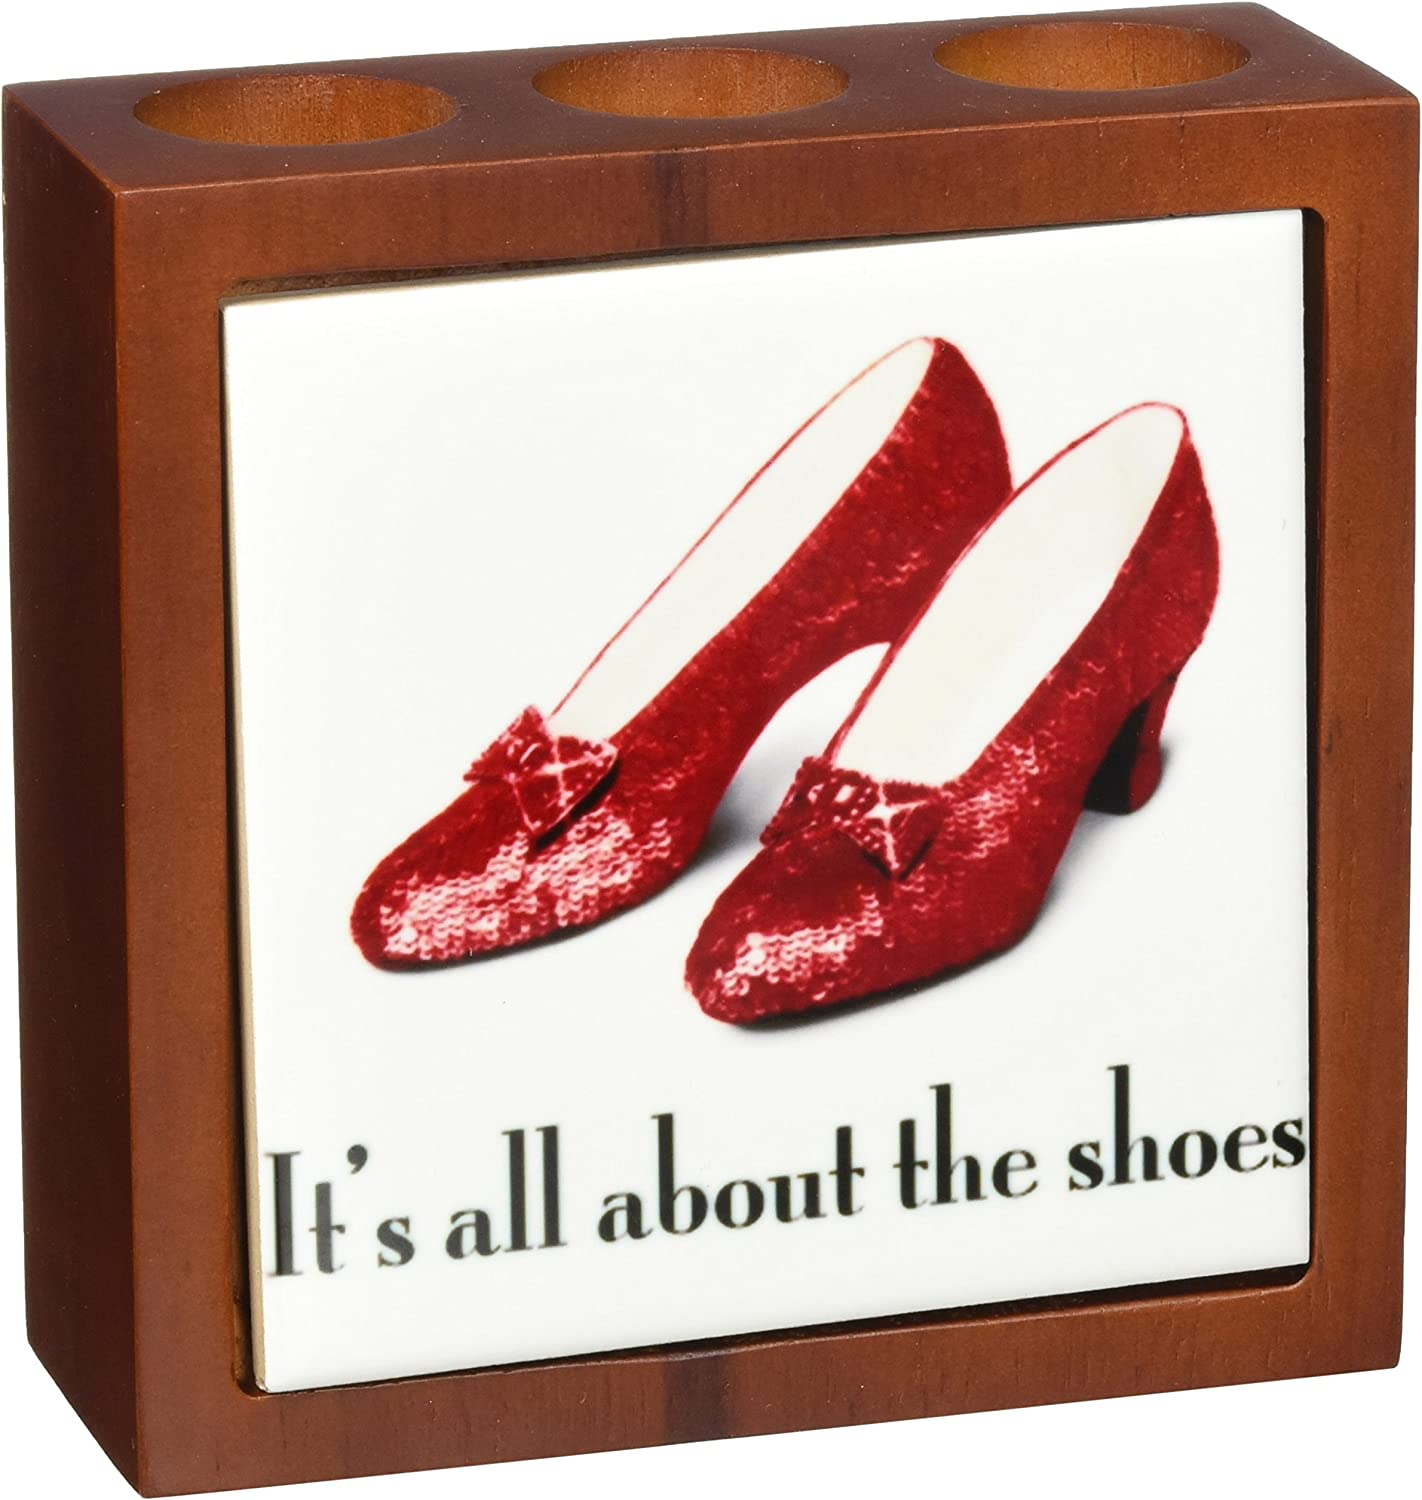 3dpink ph_108339_1 Its All About The shoes, Ruby Slippers Wizard of Oz-Tile Pen Holder, 5-Inch